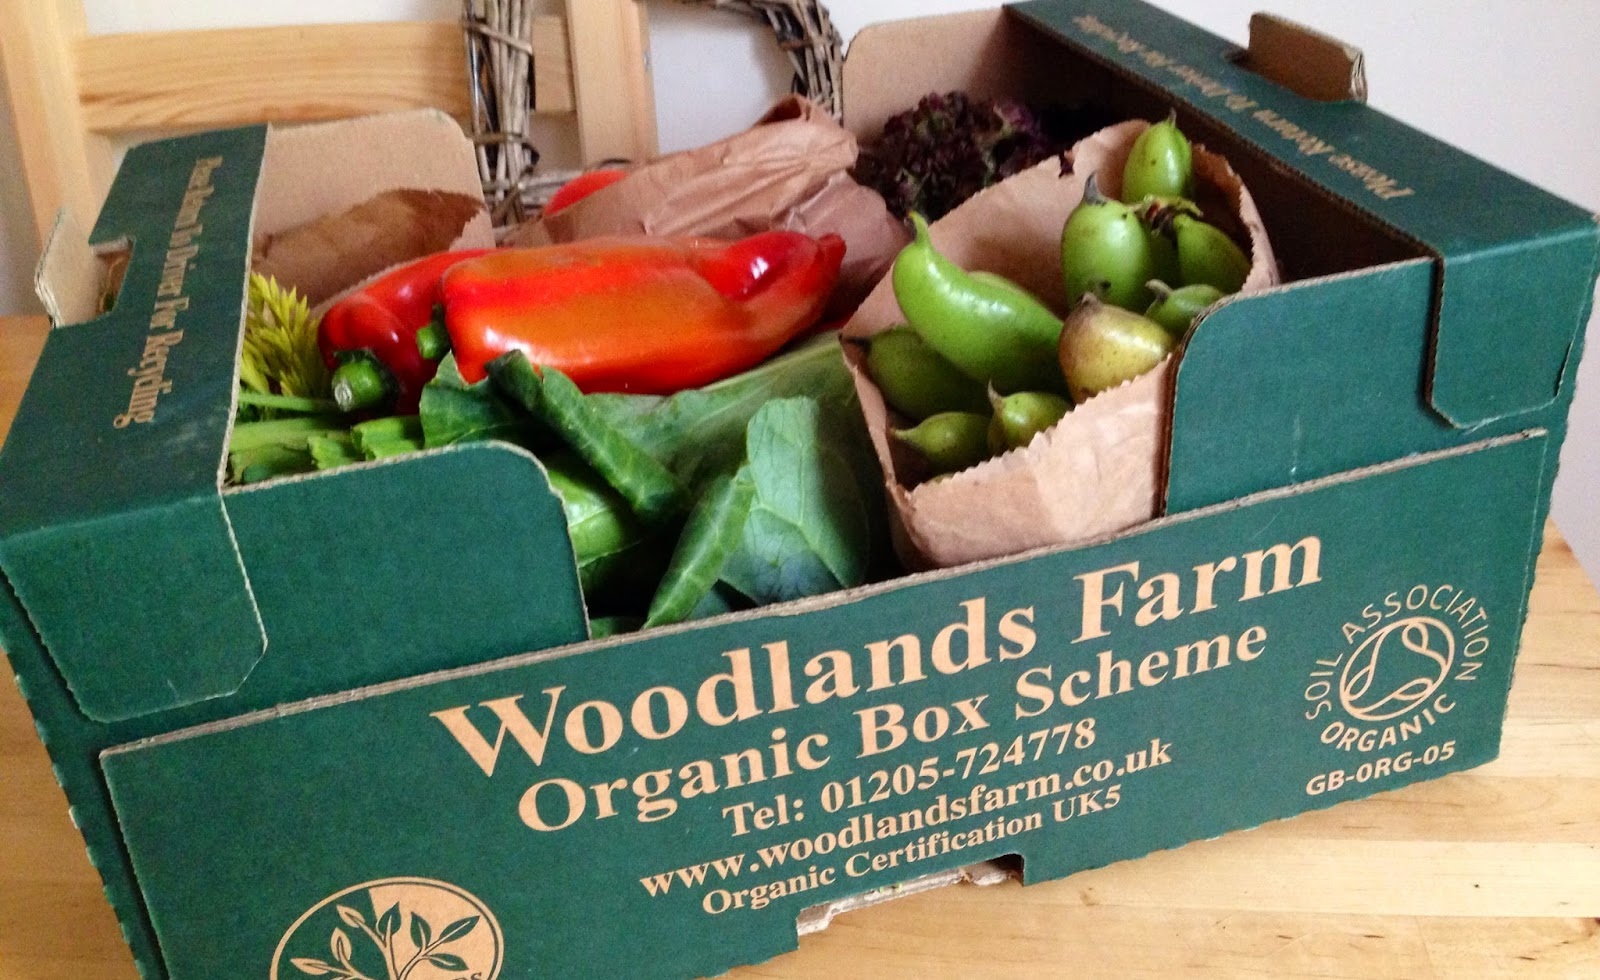 Woodlands Farm organic veg box